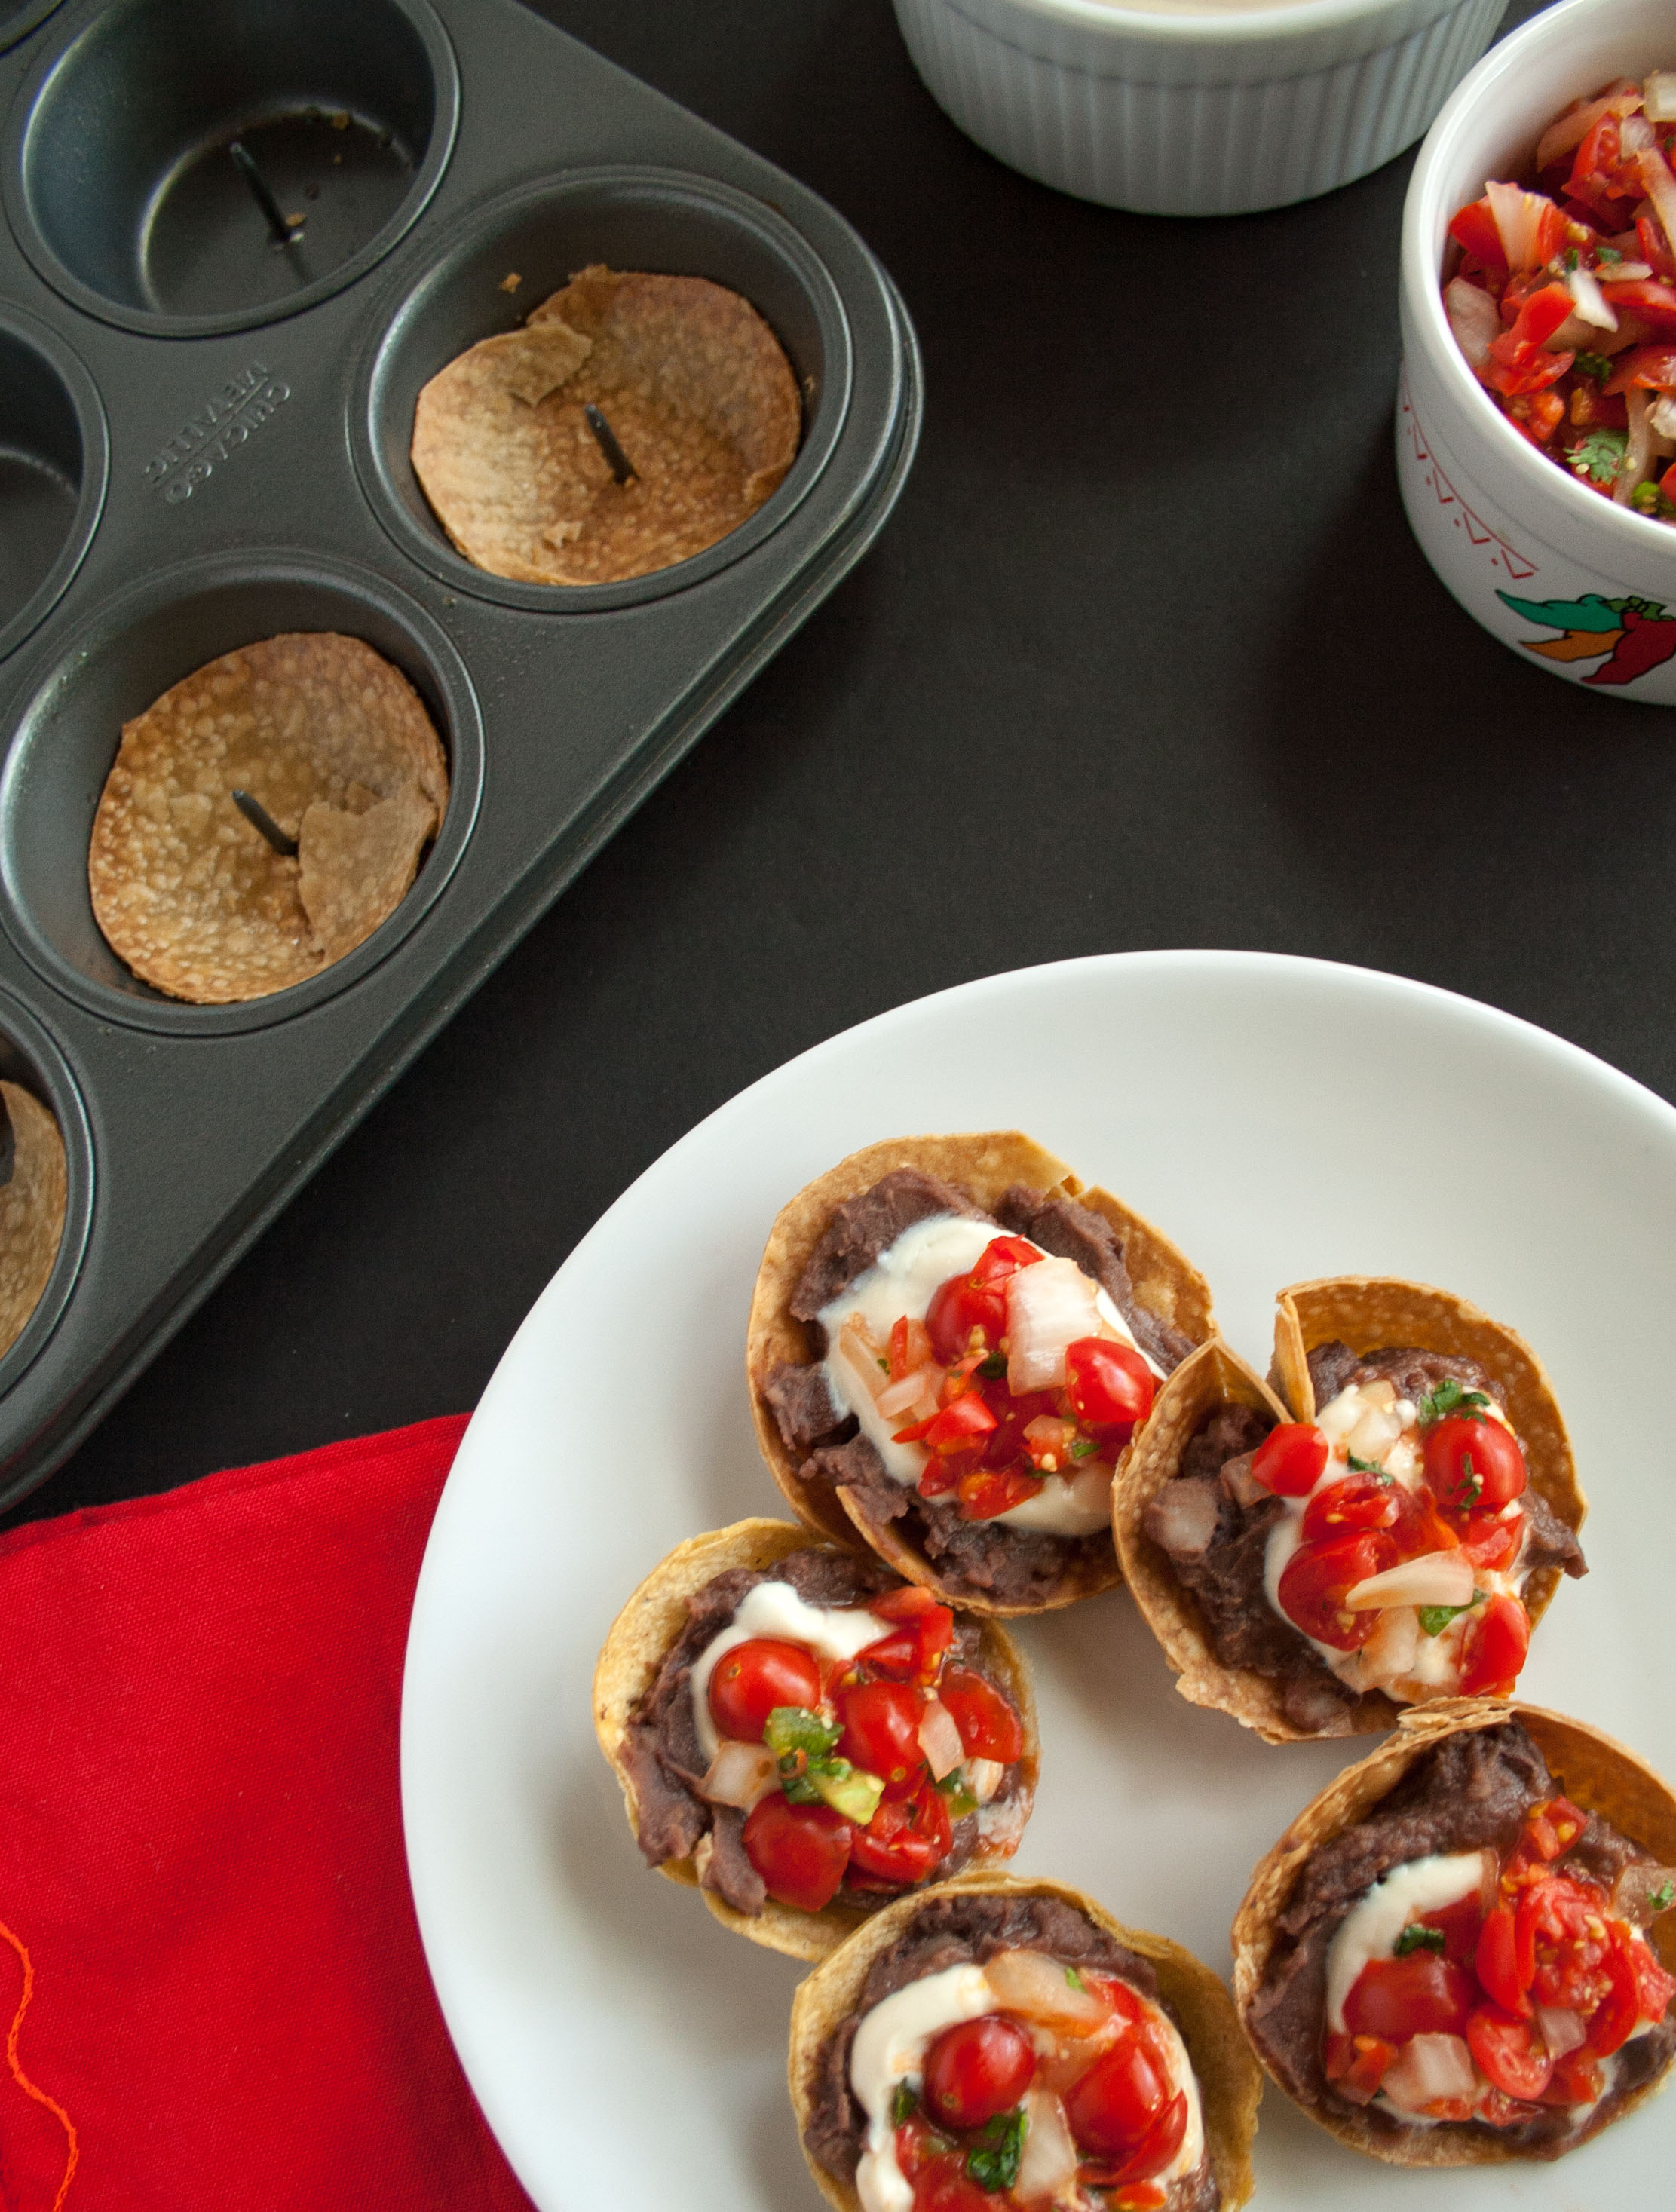 Mini Bean Tostadas with Pico de Gallo and Vegan Sour Cream birds eye view.